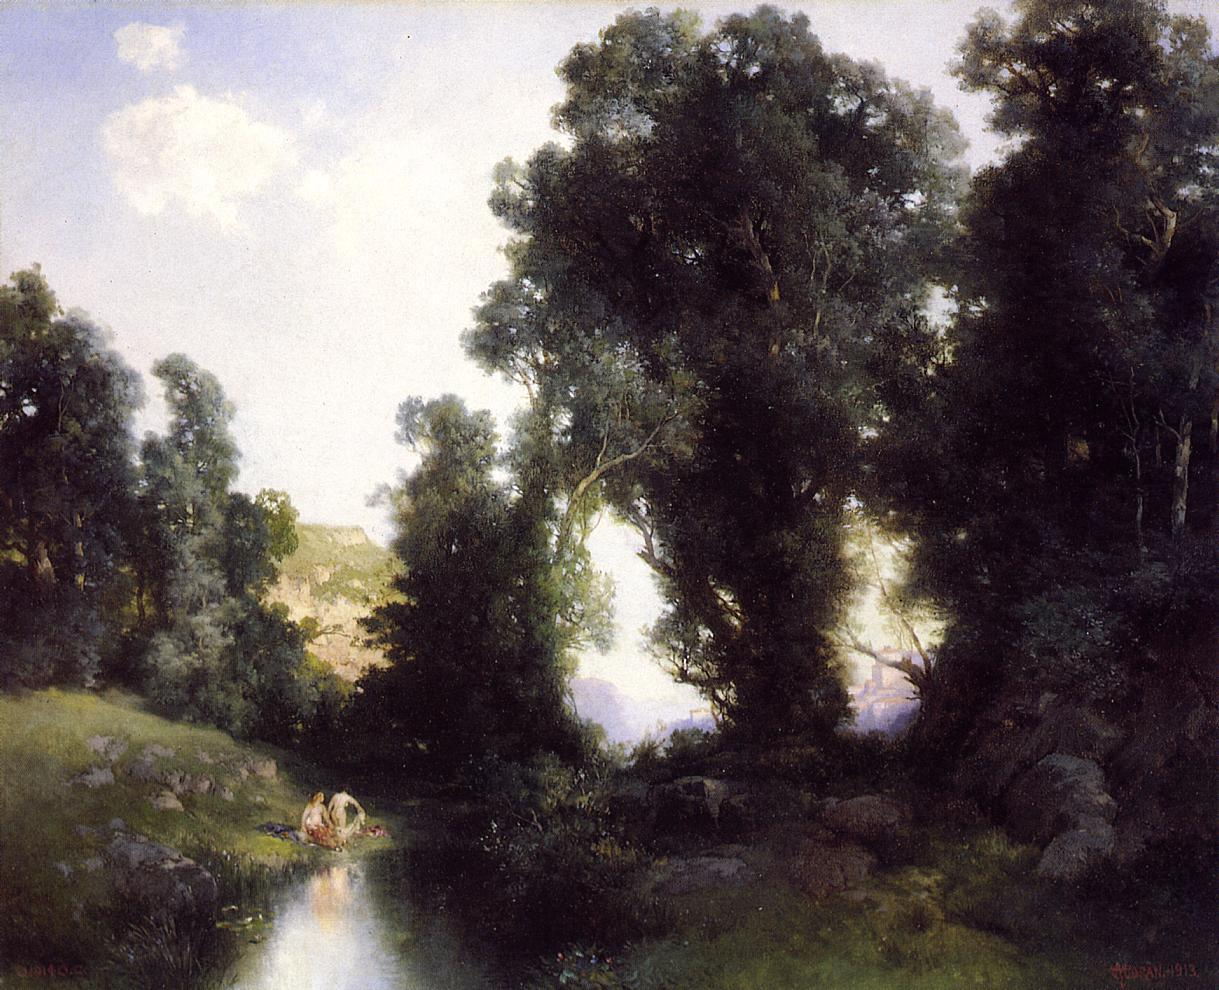 Thomas Moran The Bathing Hole, Cuernavaca, Mexico